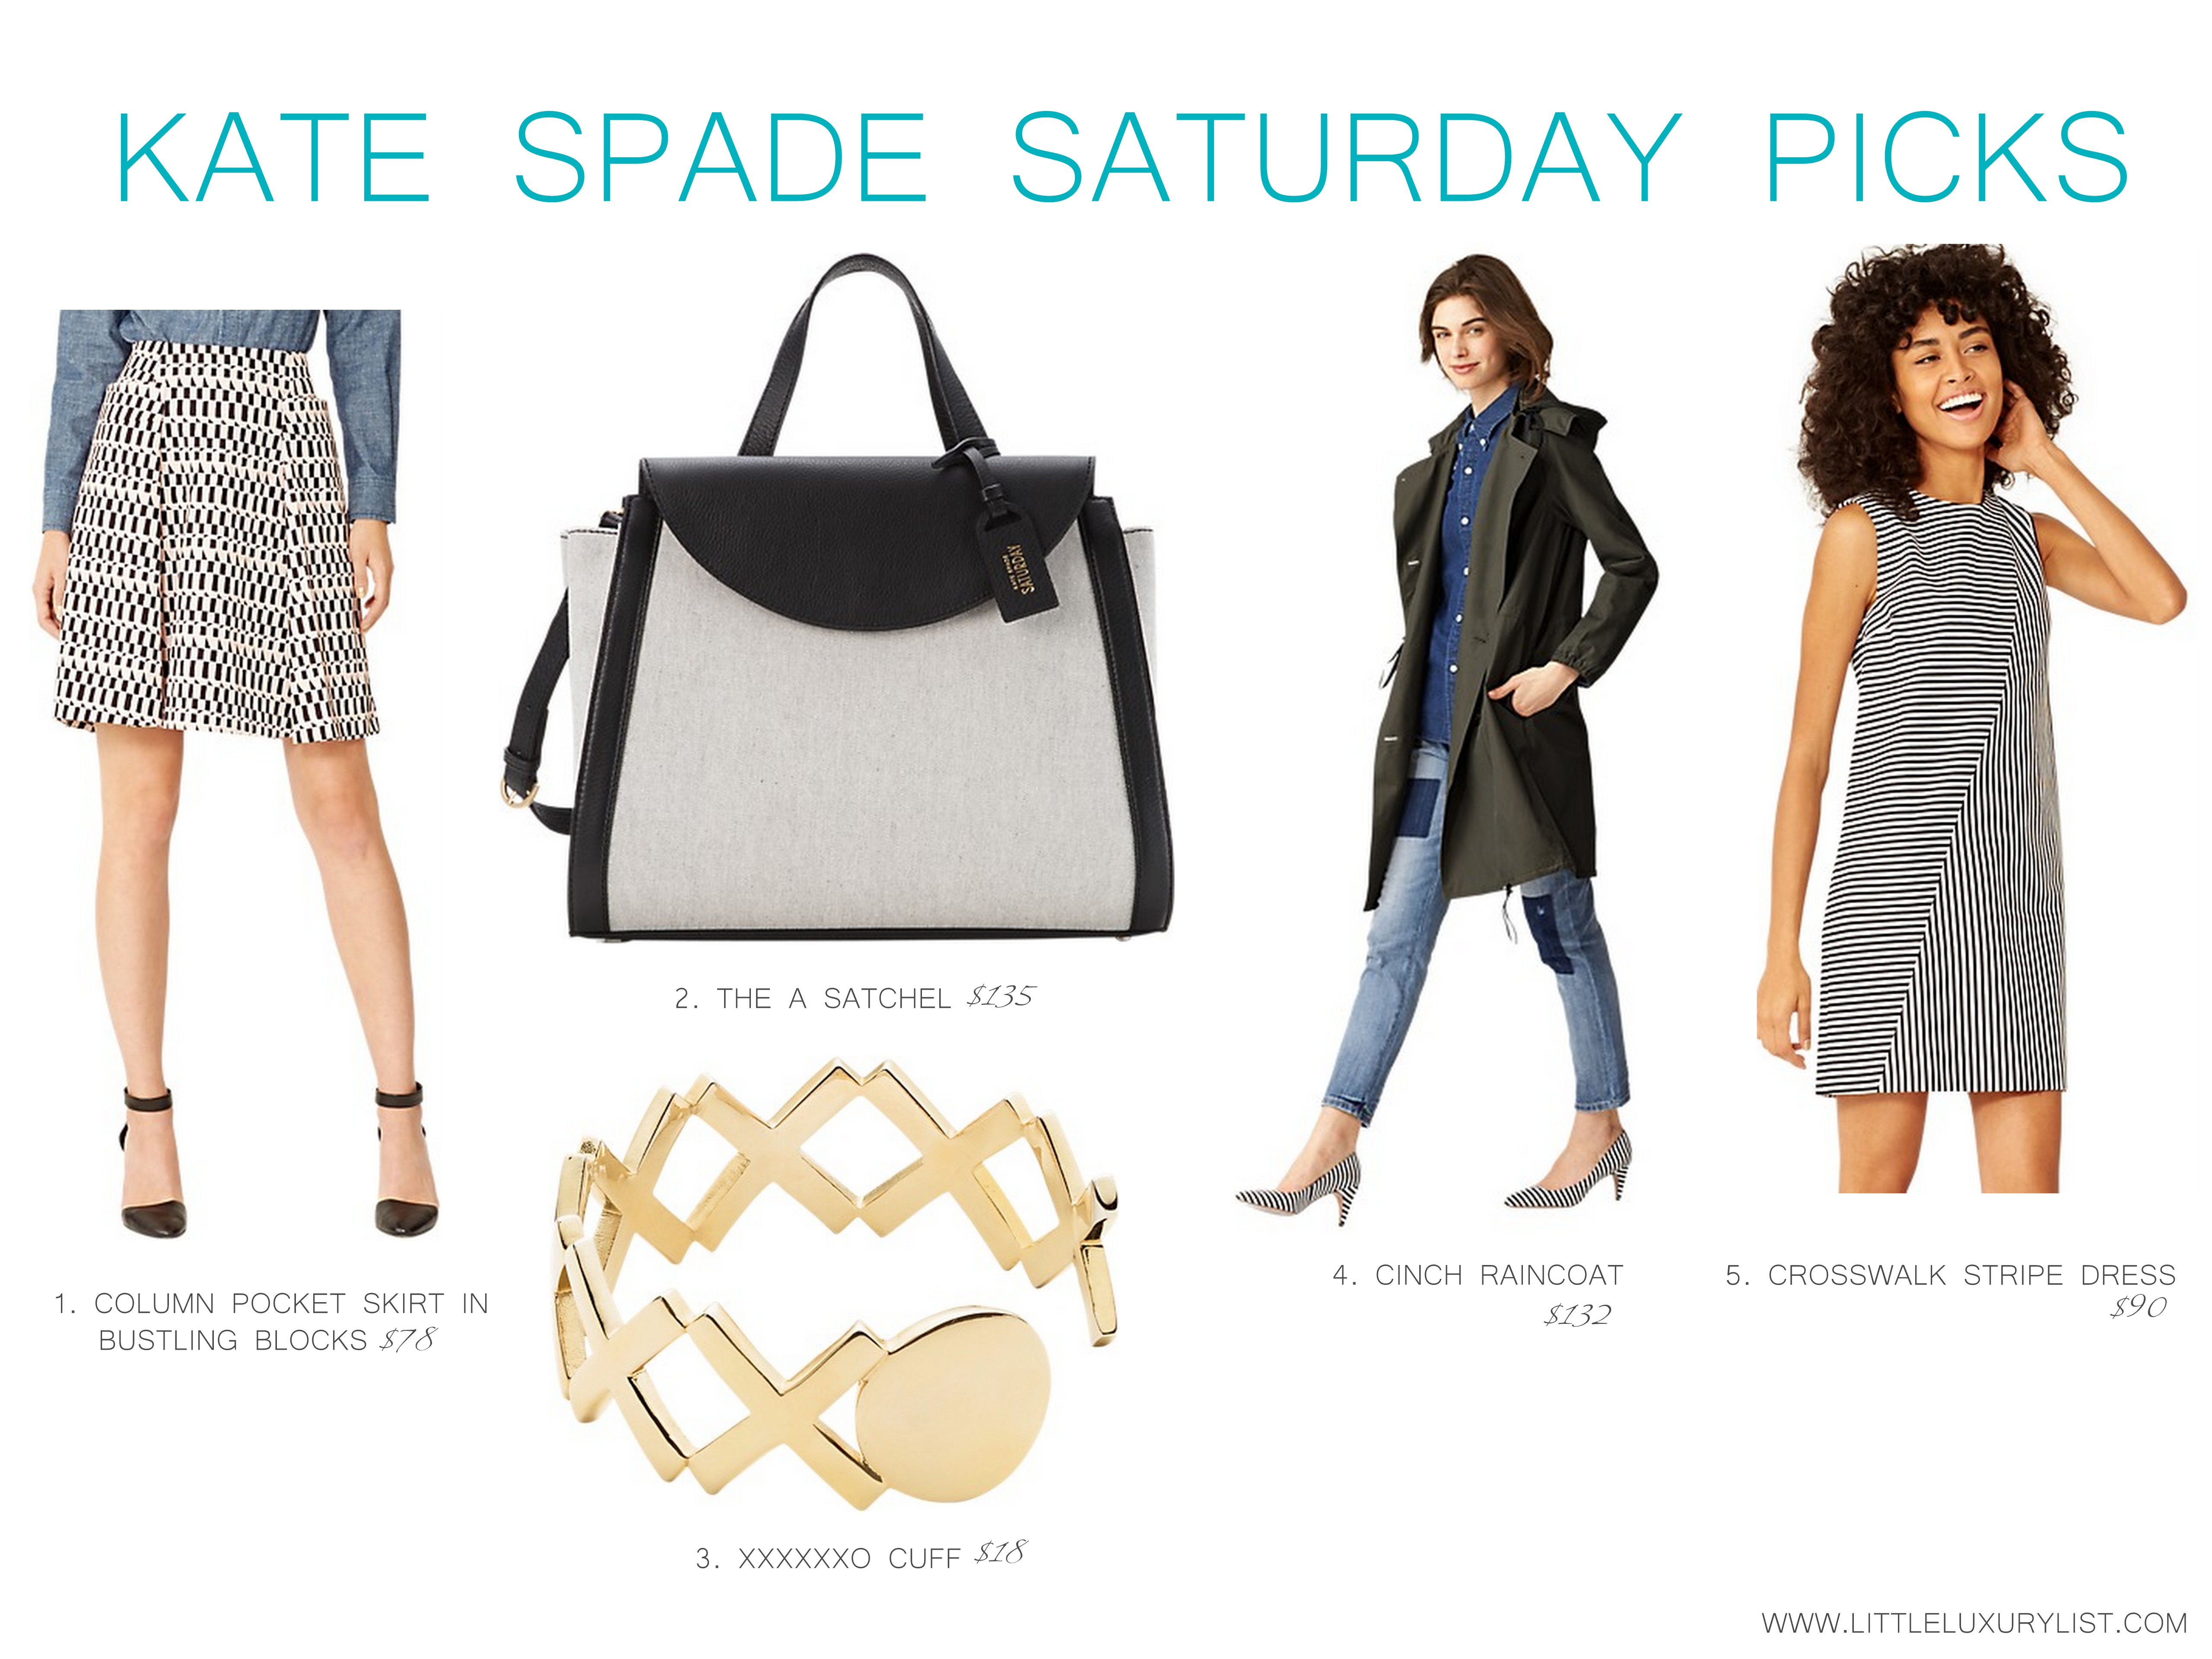 Kate Spade Saturday Picks by little luxury list